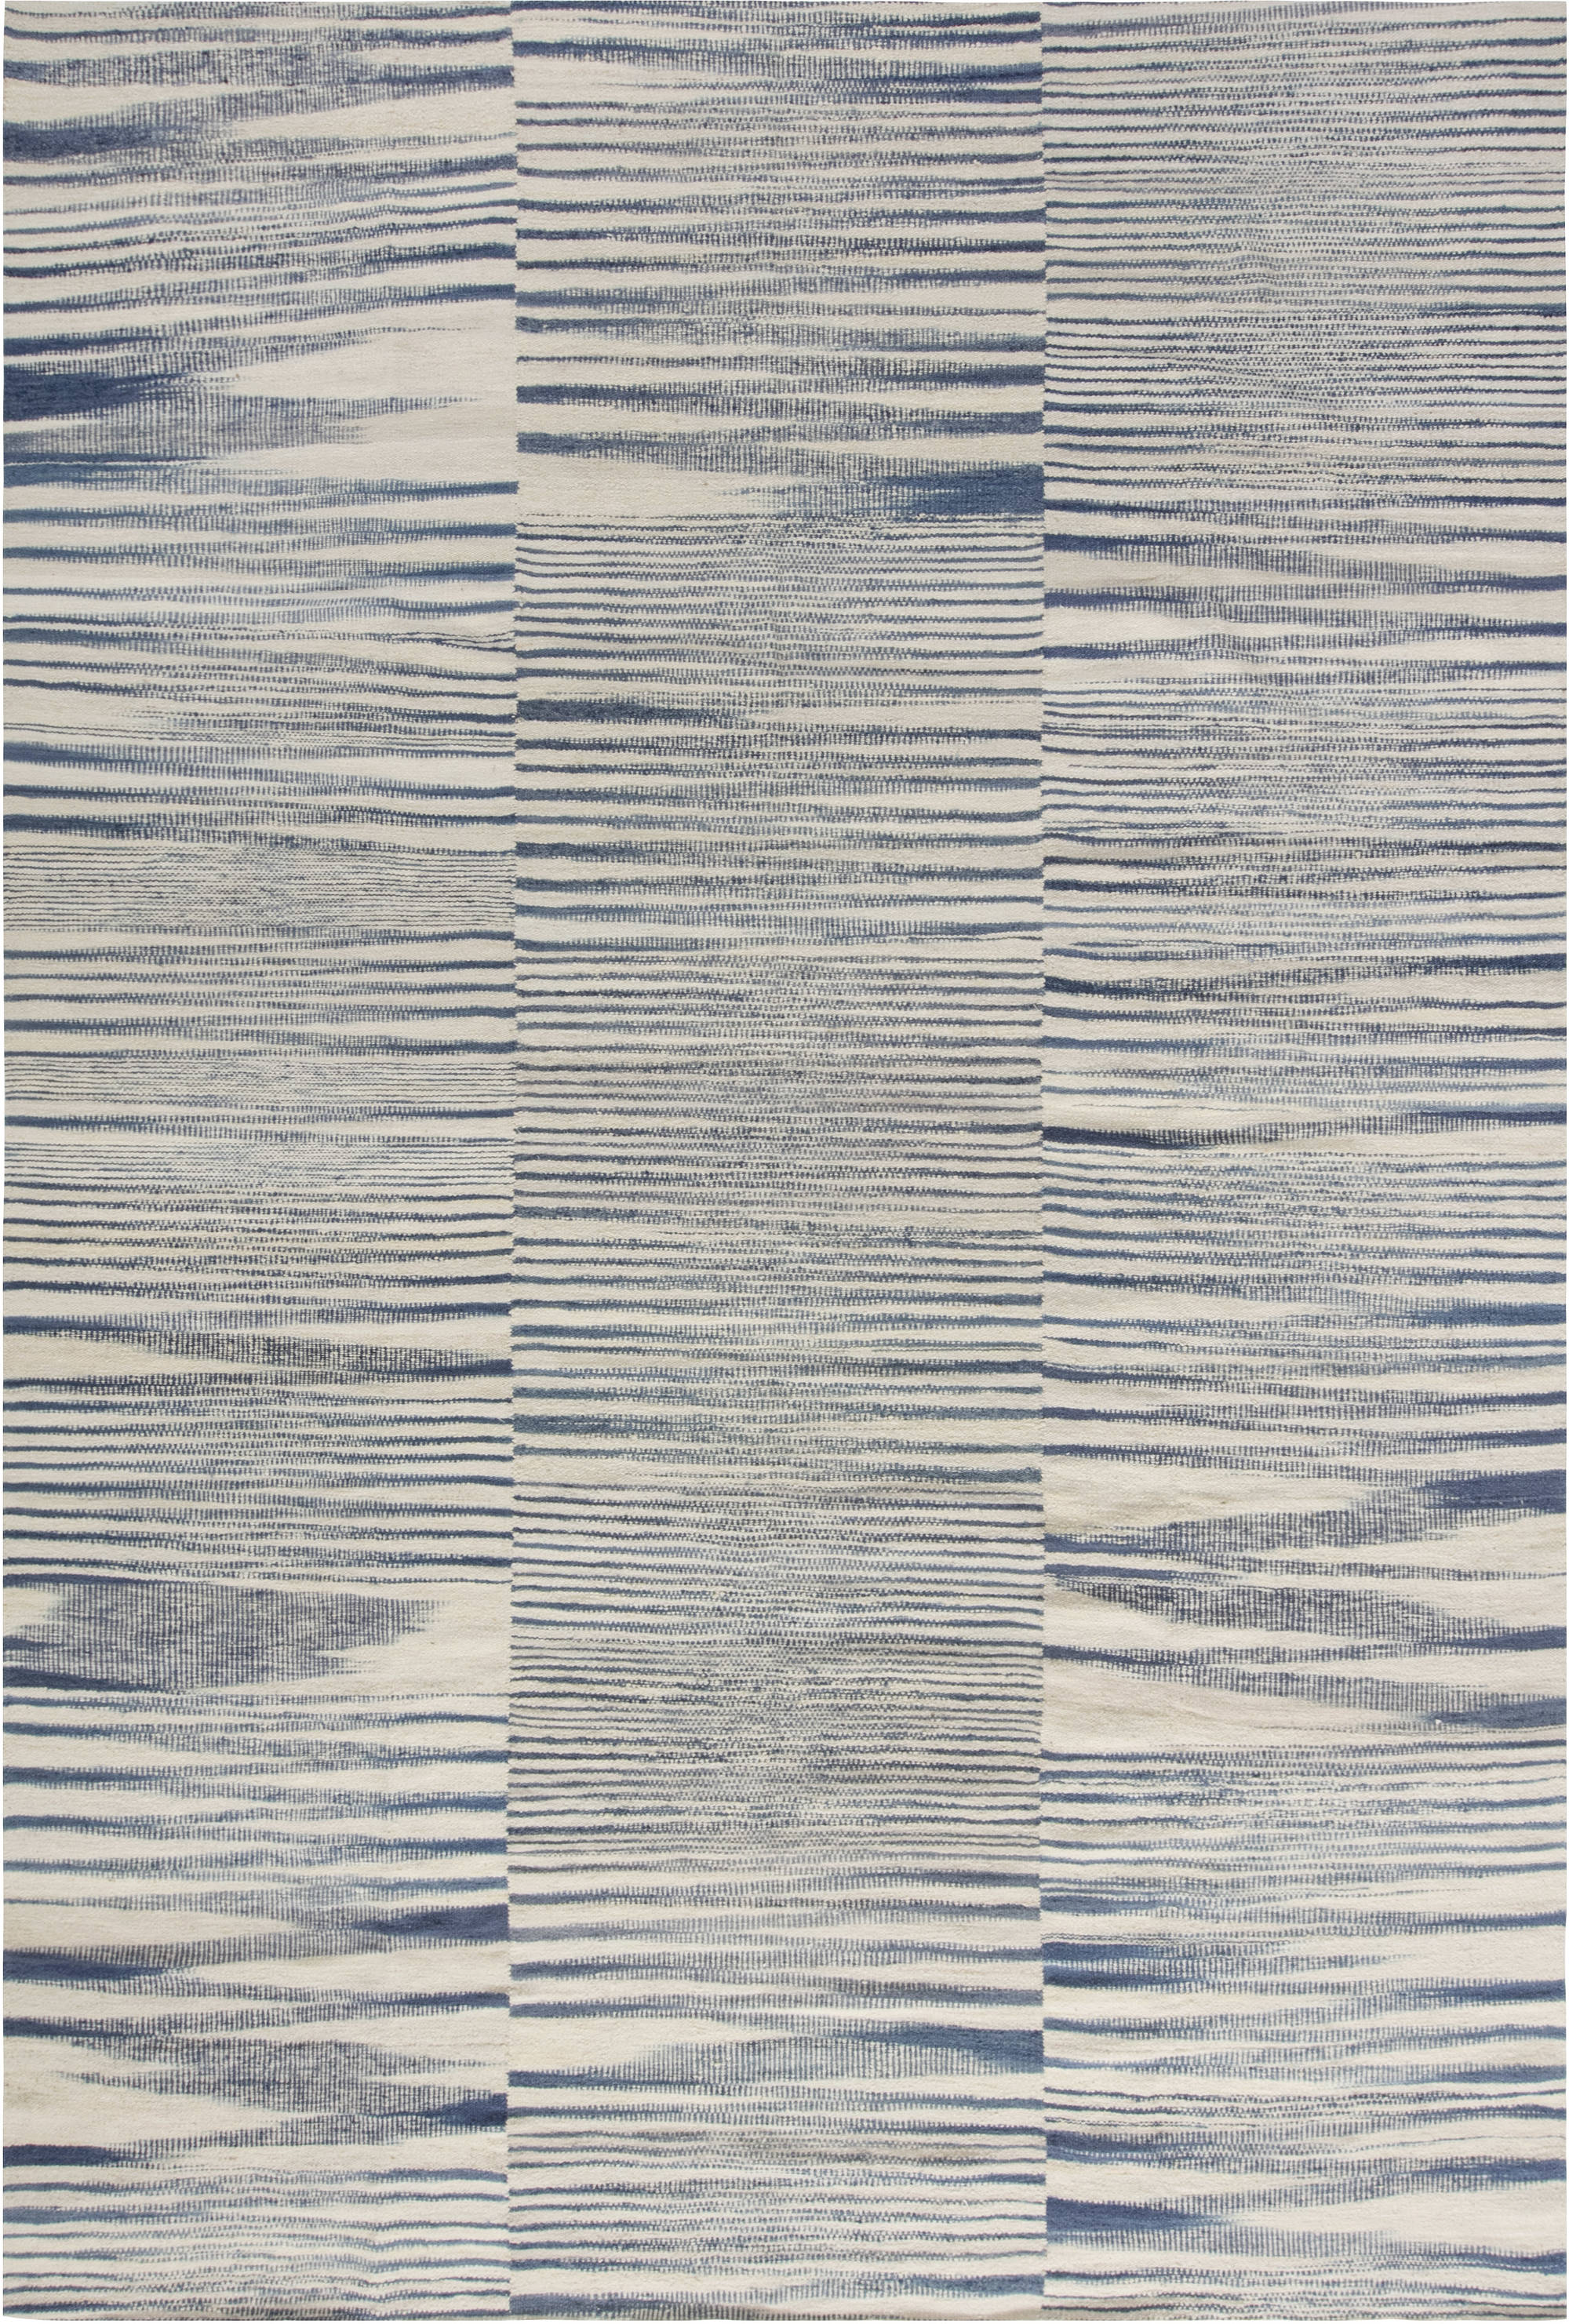 CONTEMPORARY FLAT WEAVE RUG N11786